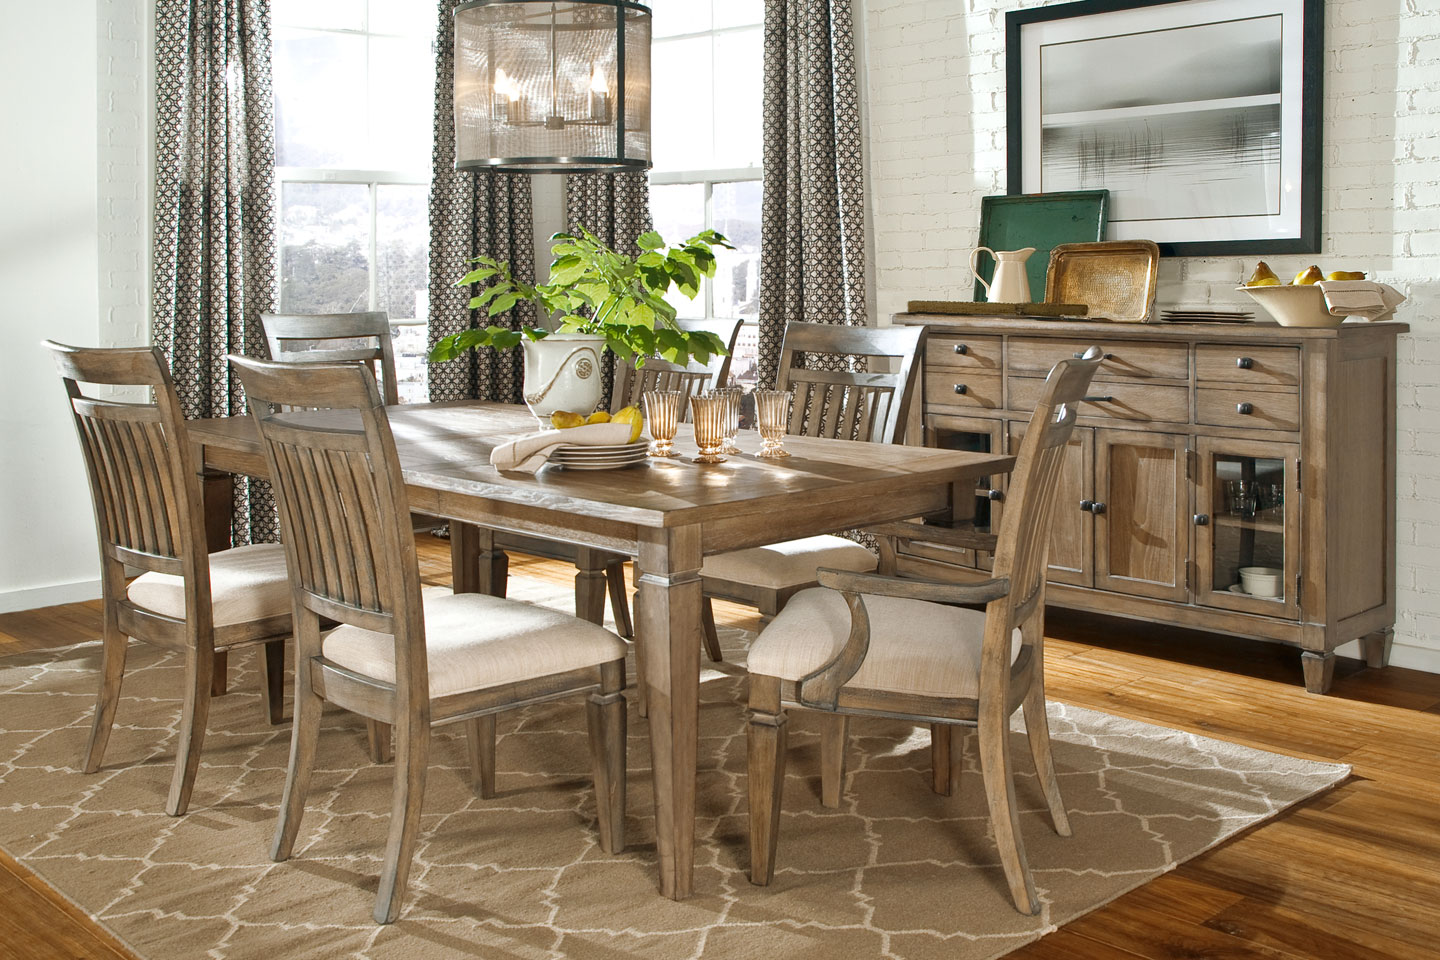 calm dining table decors for with vintage dresser also grey room ideas curtain windows and wide glass rustic accent using selective furniture options outdoor cooler stand yard